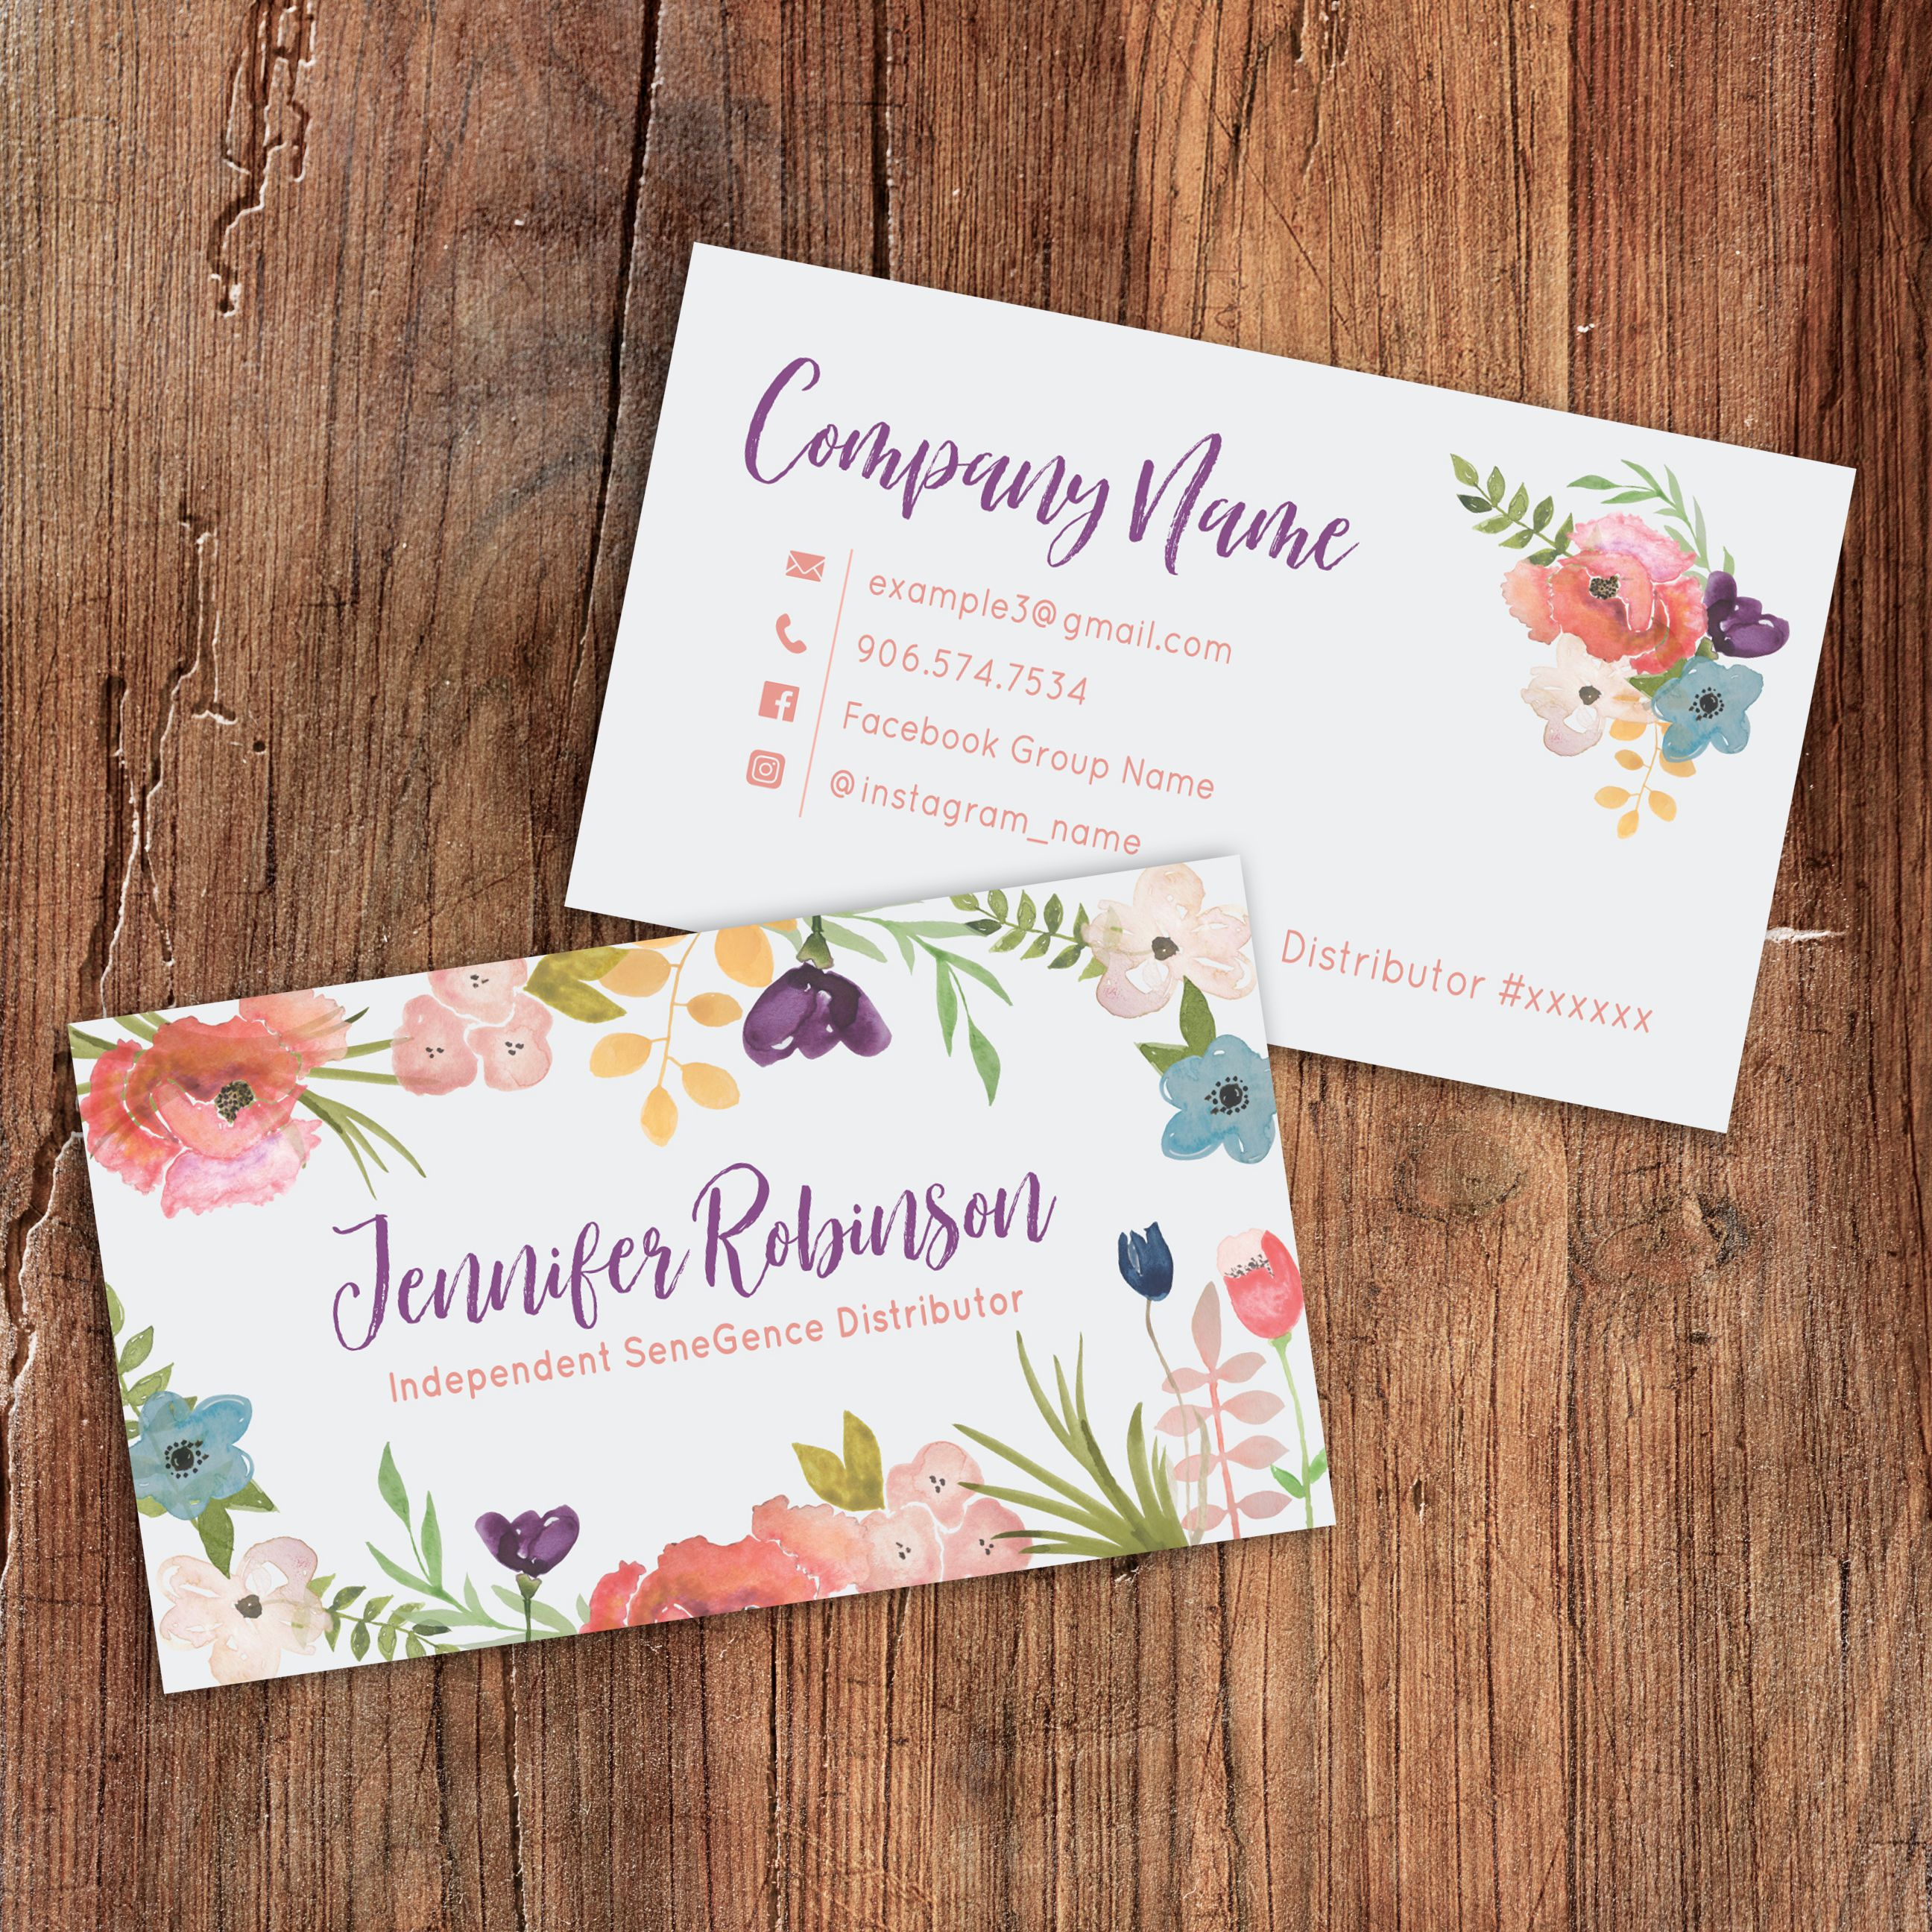 simply sapphire – lipsense business card design sold on etsy